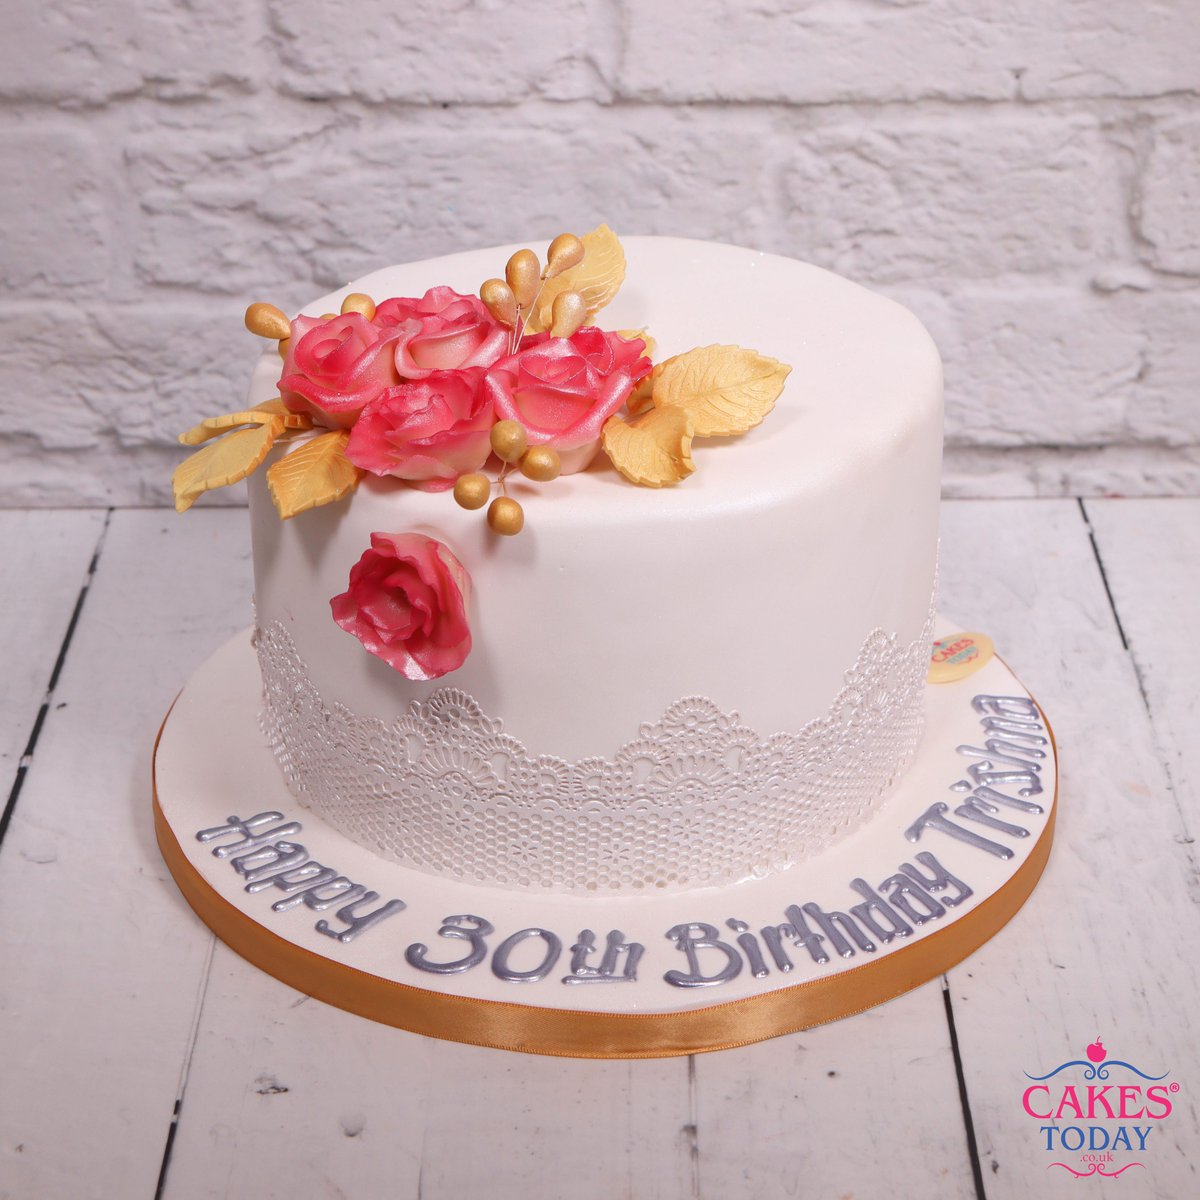 Cakes Today On Twitter SundaySpecial We Have A Simple Gorgeous And Elegant Birthday Cake Made With Edible Handcrafted Flowers By Our Bakers